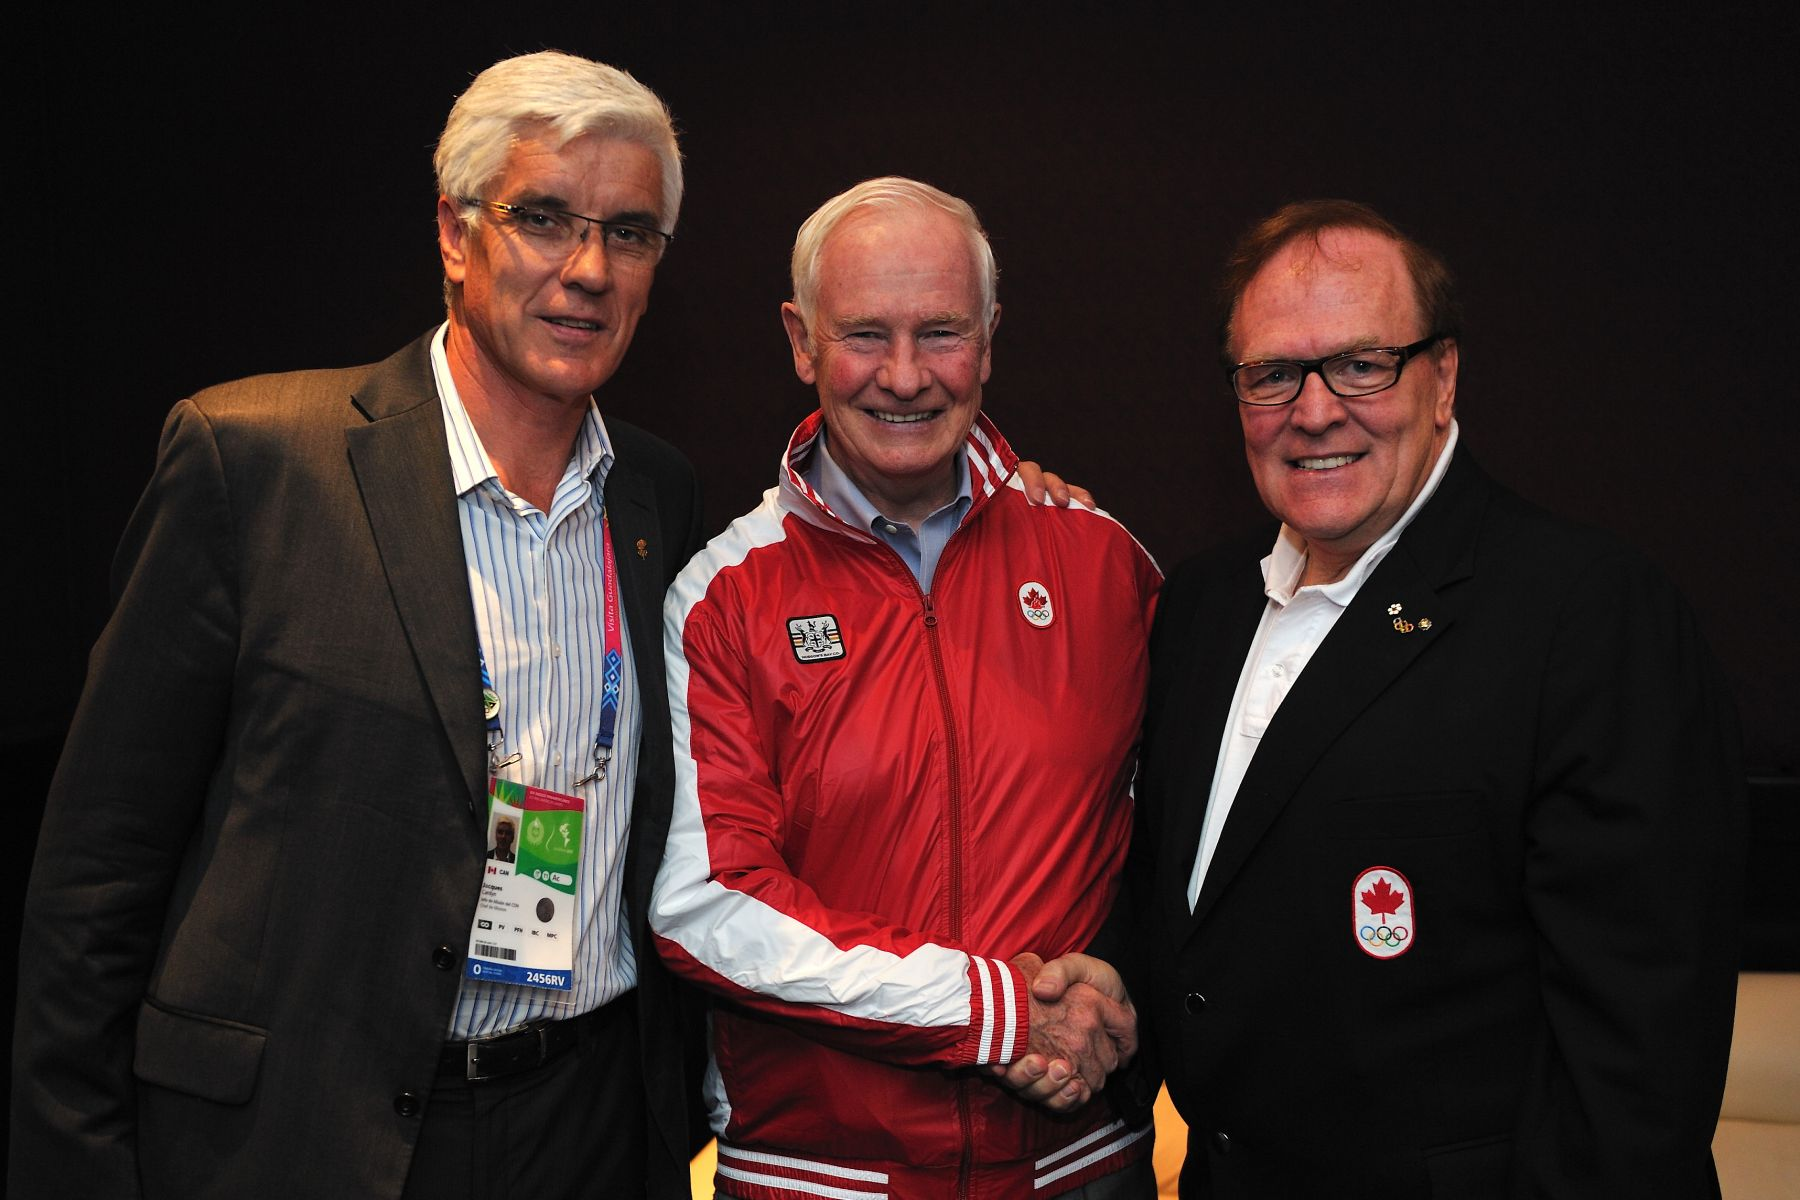 At the request of the Right Honourable Stephen Harper, Prime Minister of Canada, His Excellency the Right Honourable David Johnston, Governor General of Canada, attended the XVI Pan American Games in Guadalajara, Mexico, on October 29 and 30, 2011. Upon his arrival in the city, His Excellency received a Canadian athlete's jacket presented by Mr. Marcel Aubut, President of the Canadian Olympic Committee (right), and Mr. Jacques Cardyn, Chef de Mission of Team Canada (left).